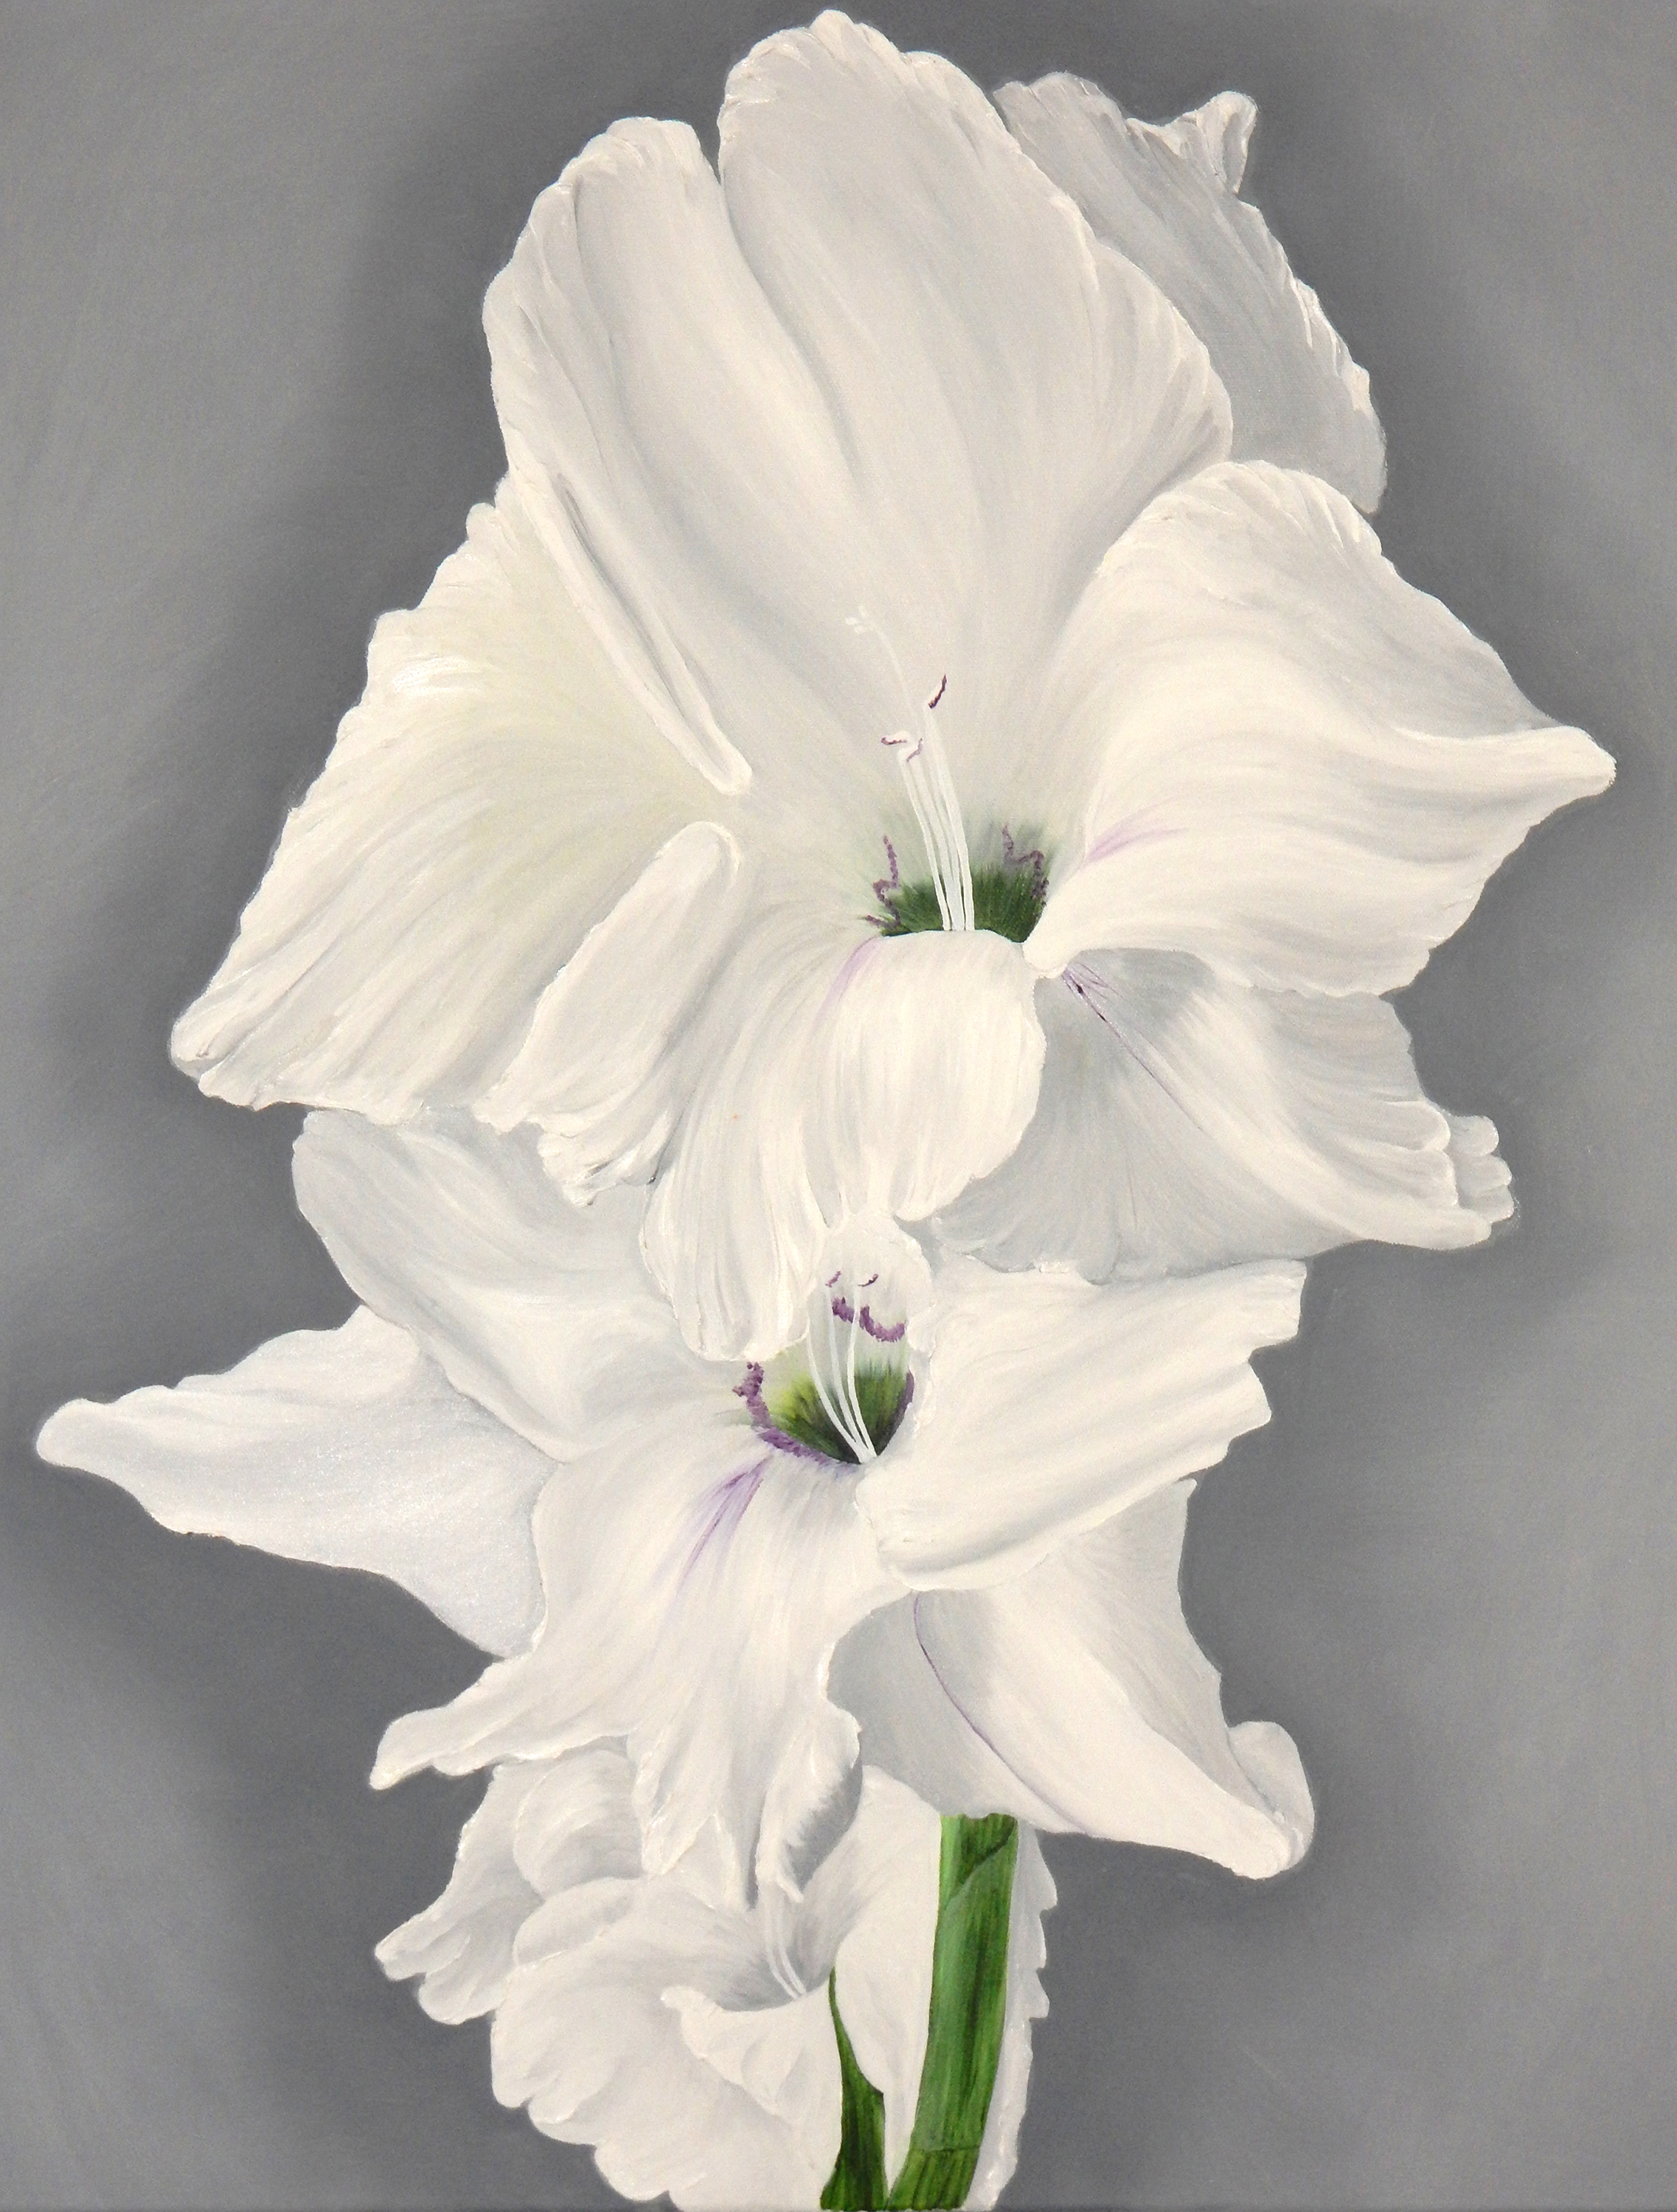 White Gladiolus Double I  2017 Oil on canvas 30 x 24 x 1.5 inches